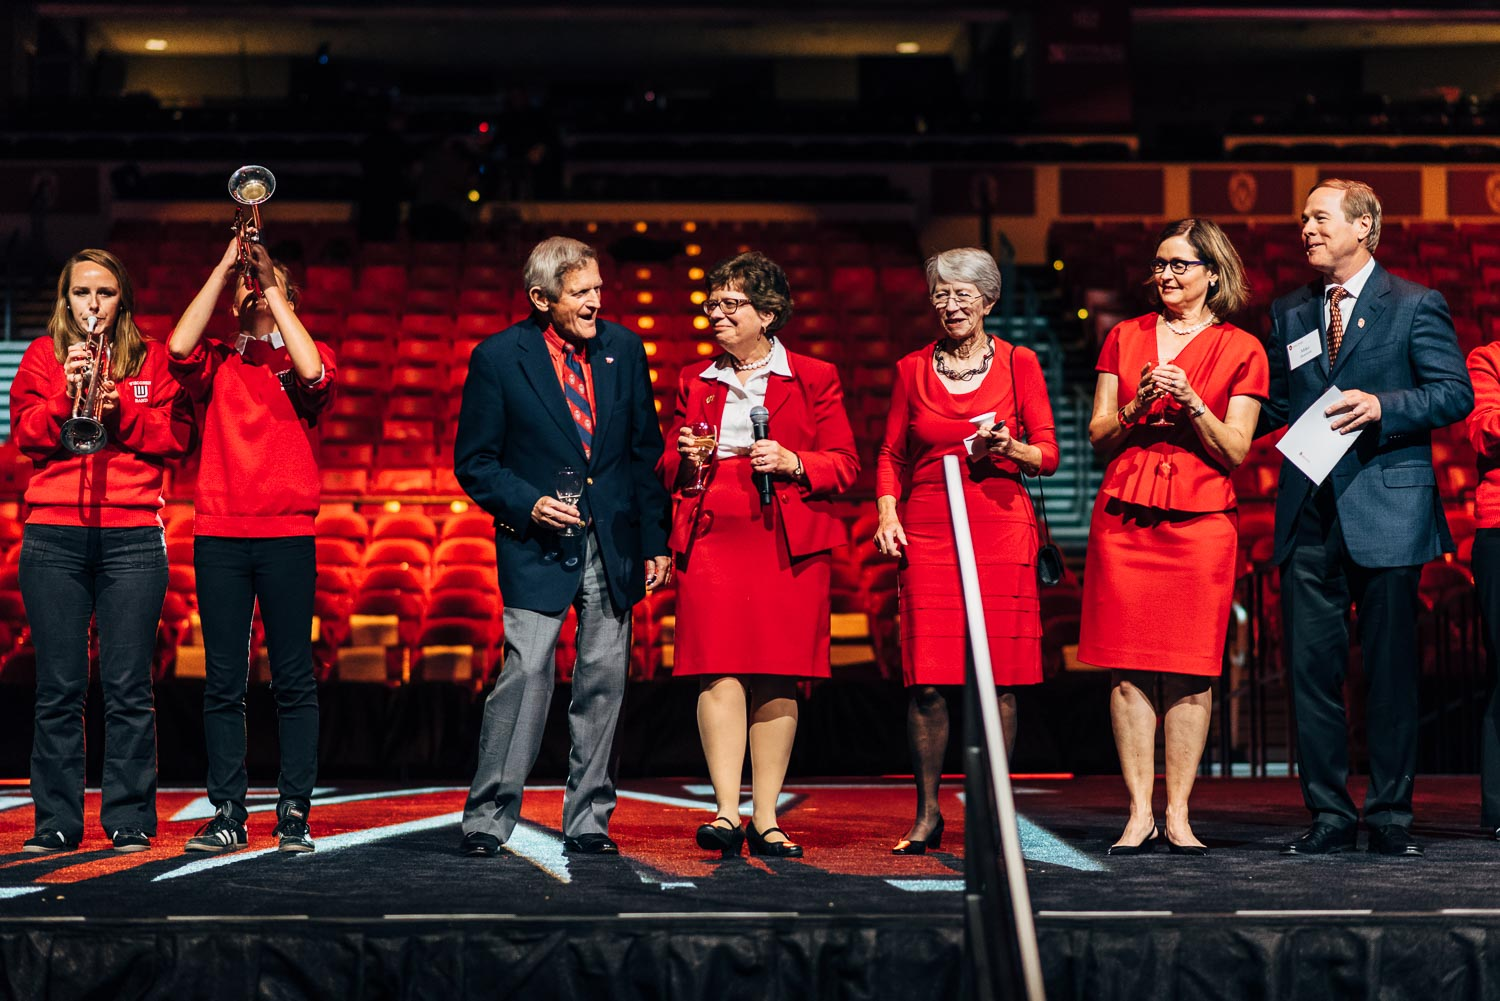 executives of UW are singing during the opening ceremony of corporate event in Madison, Wisconsin